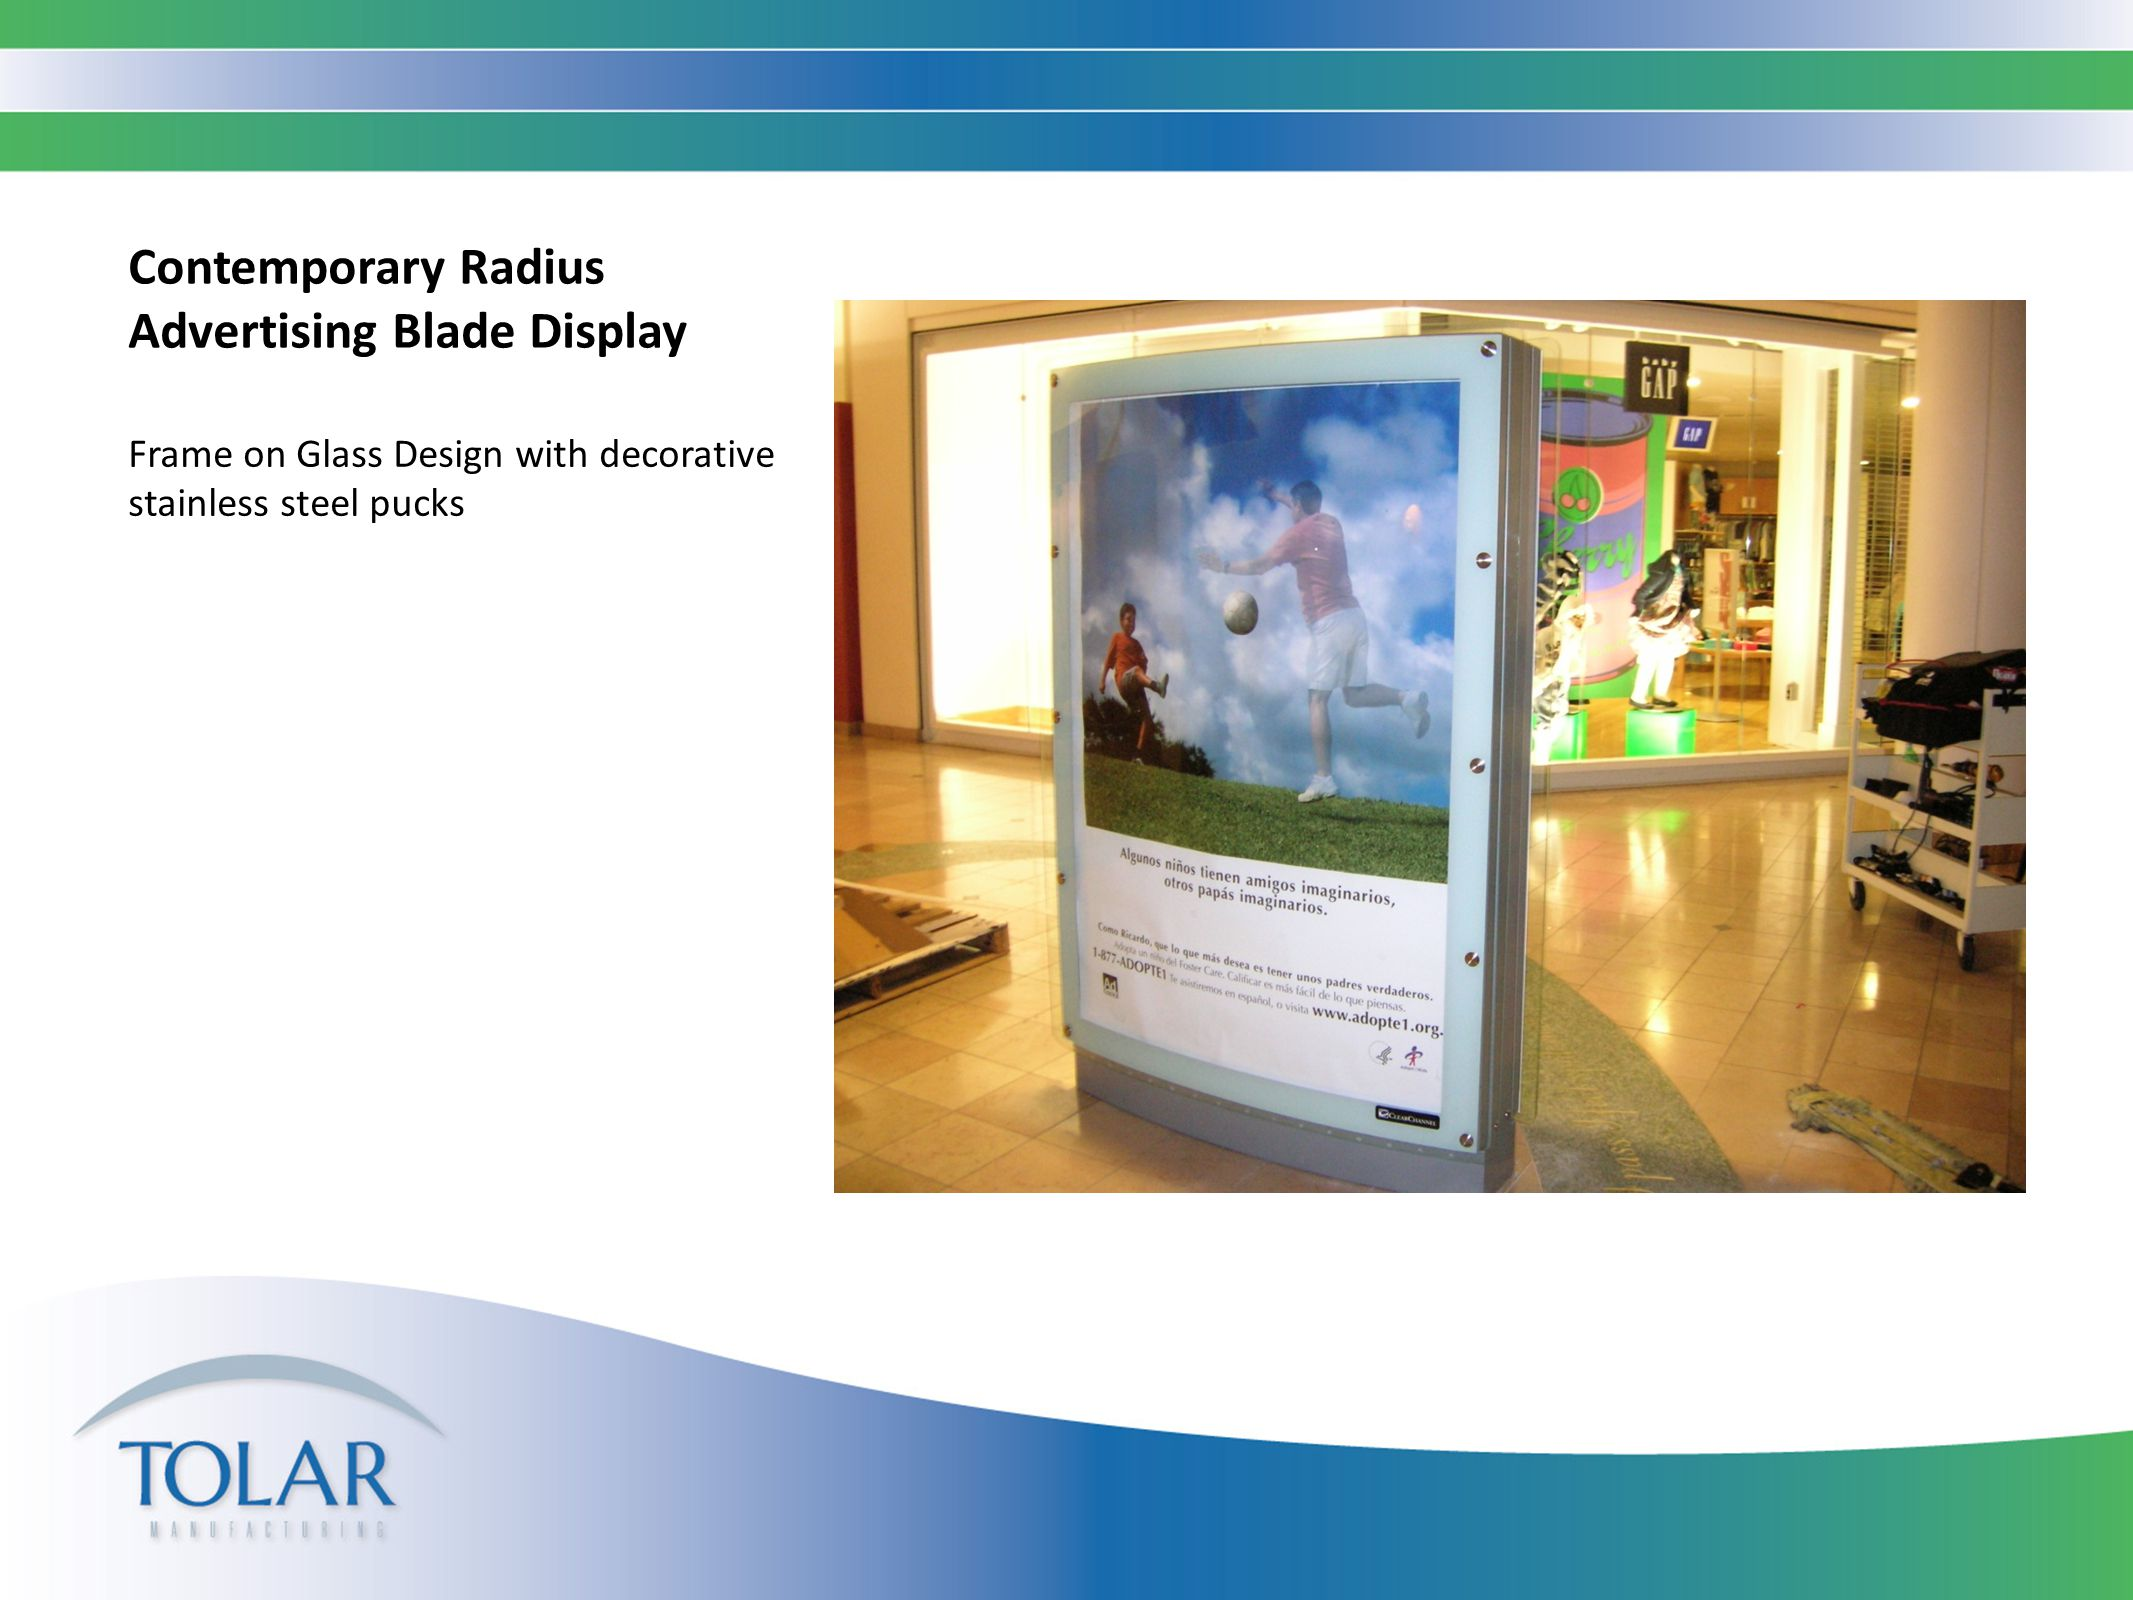 Contemporary Radius Advertising Blade Display Frame on Glass Design with decorative stainless steel pucks